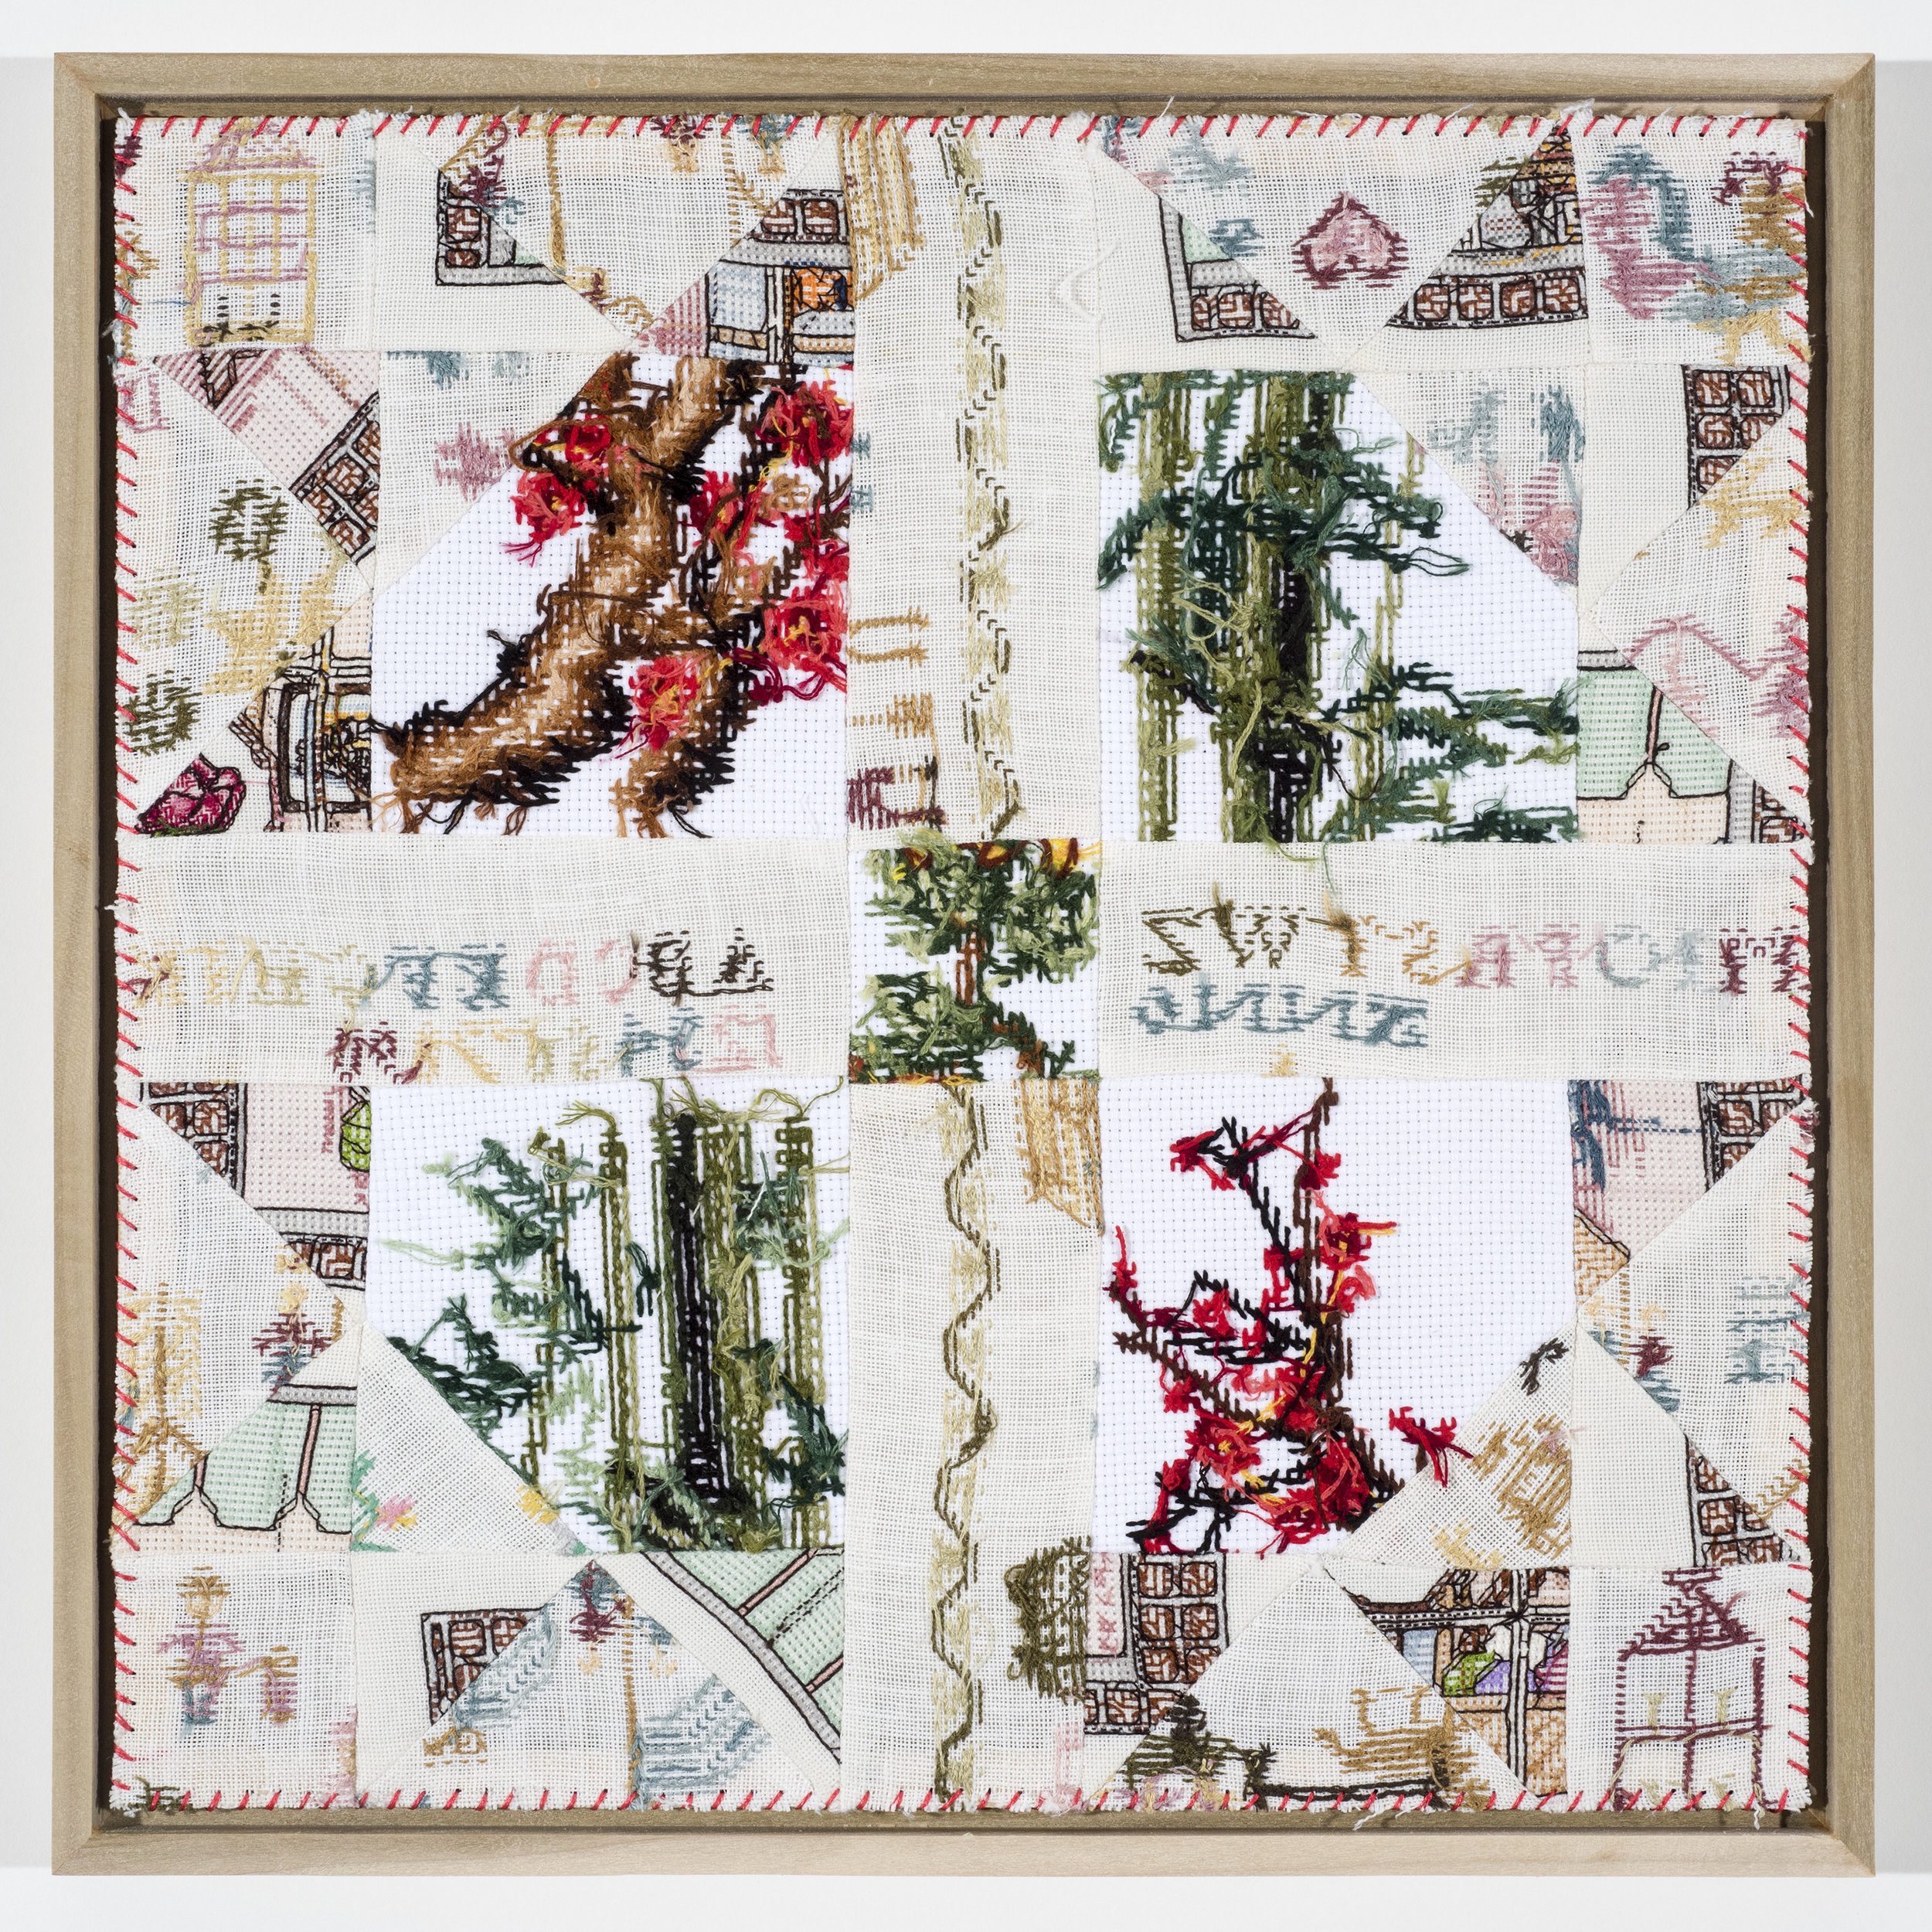 "Quilt Study 24 – A Study in Horticulture Found Embroidery, Aida 14"" x 14"" 2017 $400"